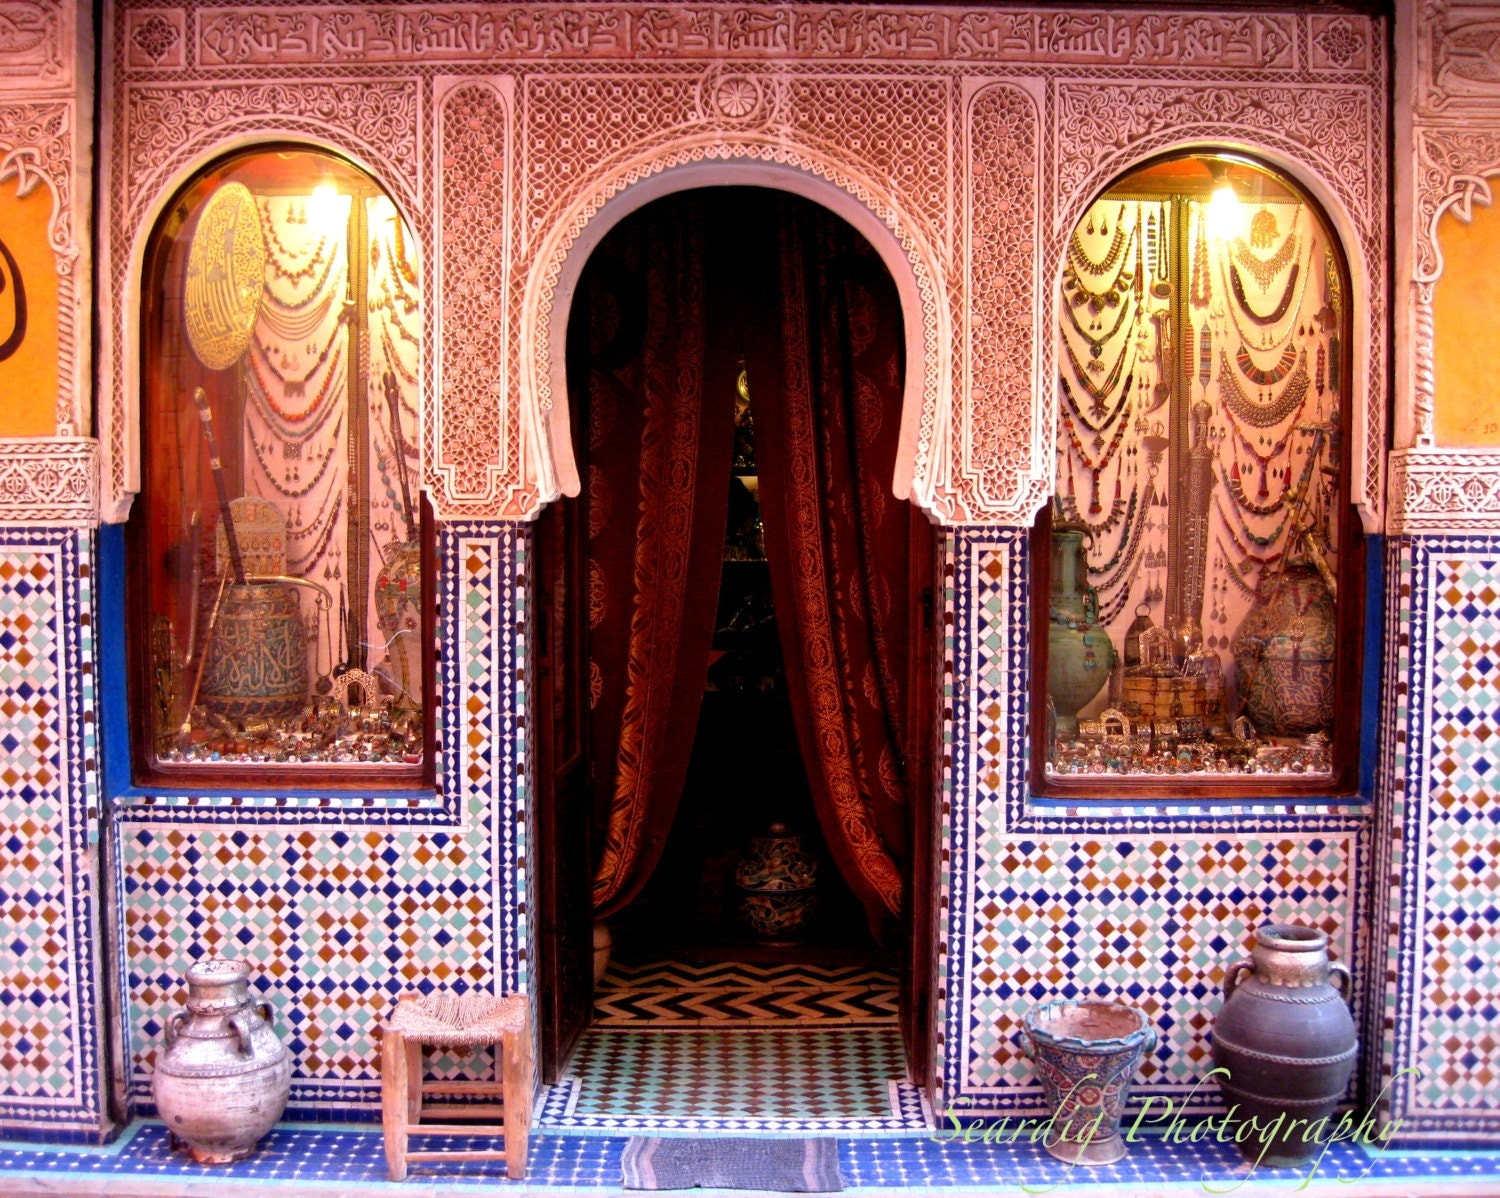 Https Www Etsy Com Listing 120177424 Moroccan Decor Marrakesh Morocco Door